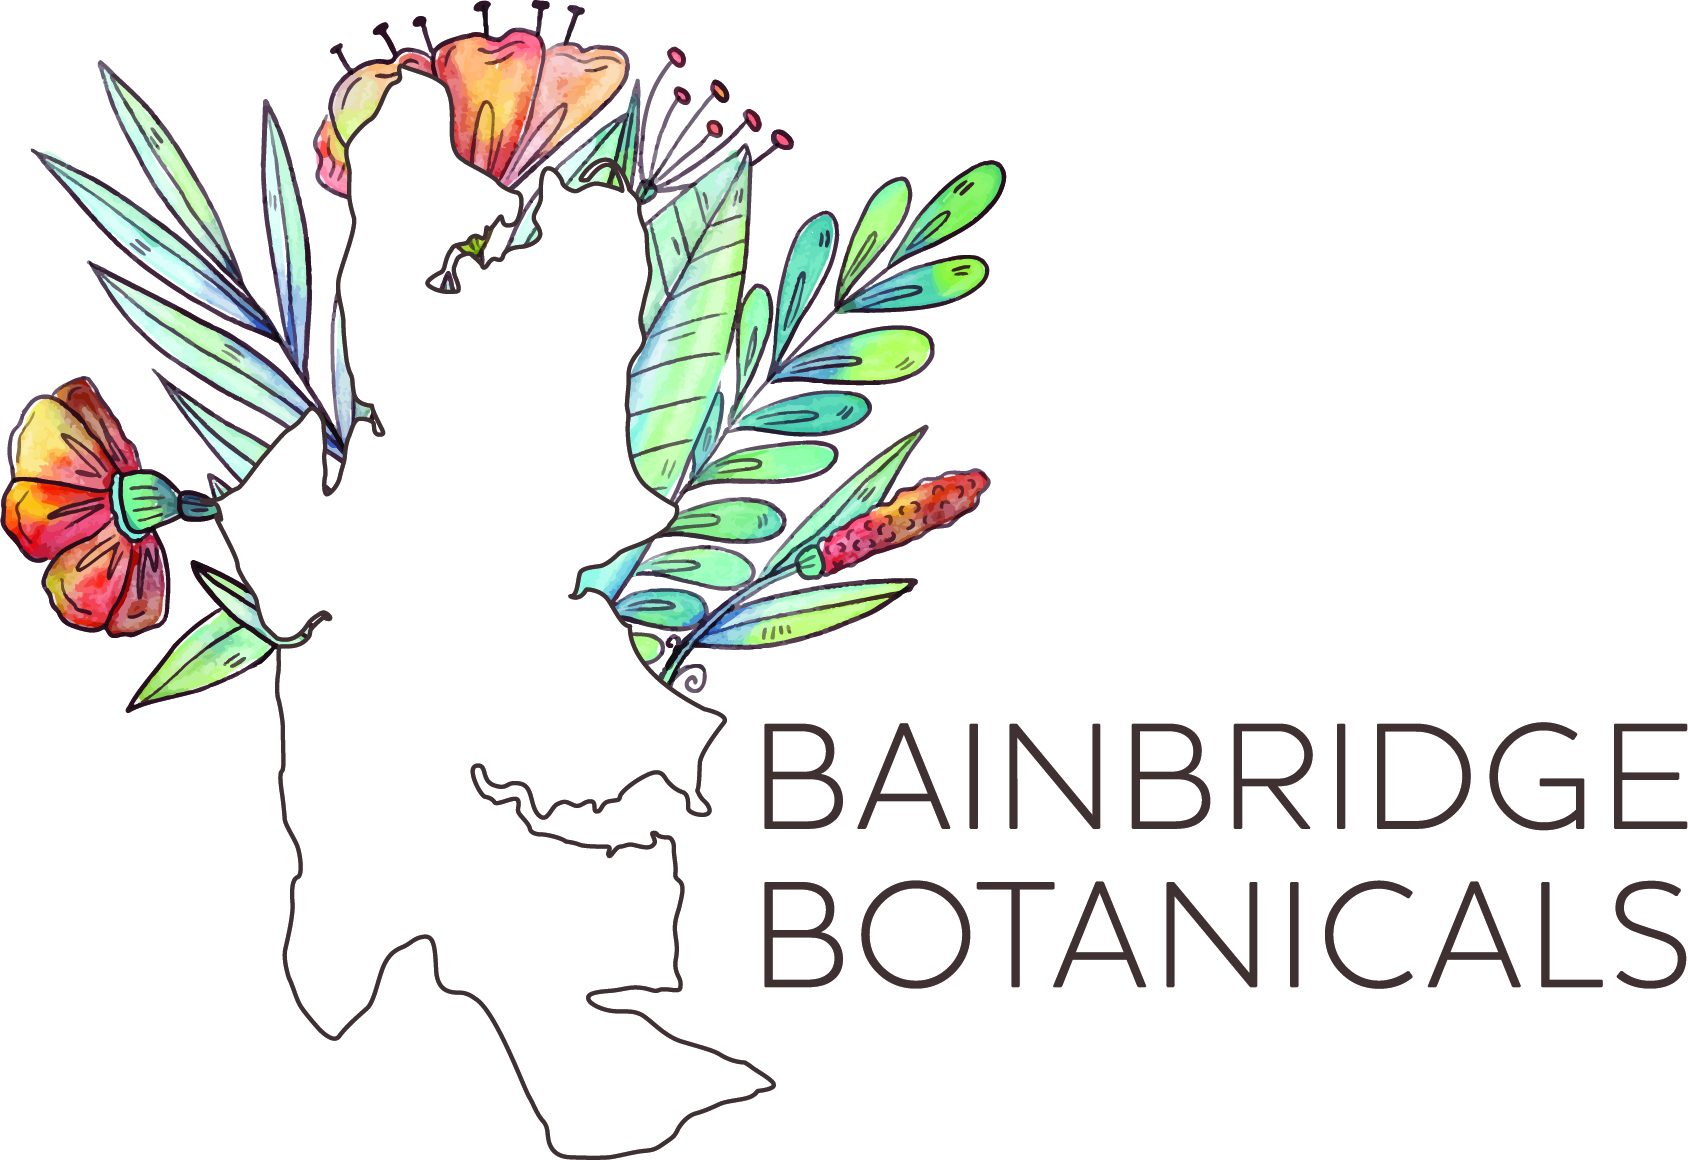 Bainbridge Botanicals LLC